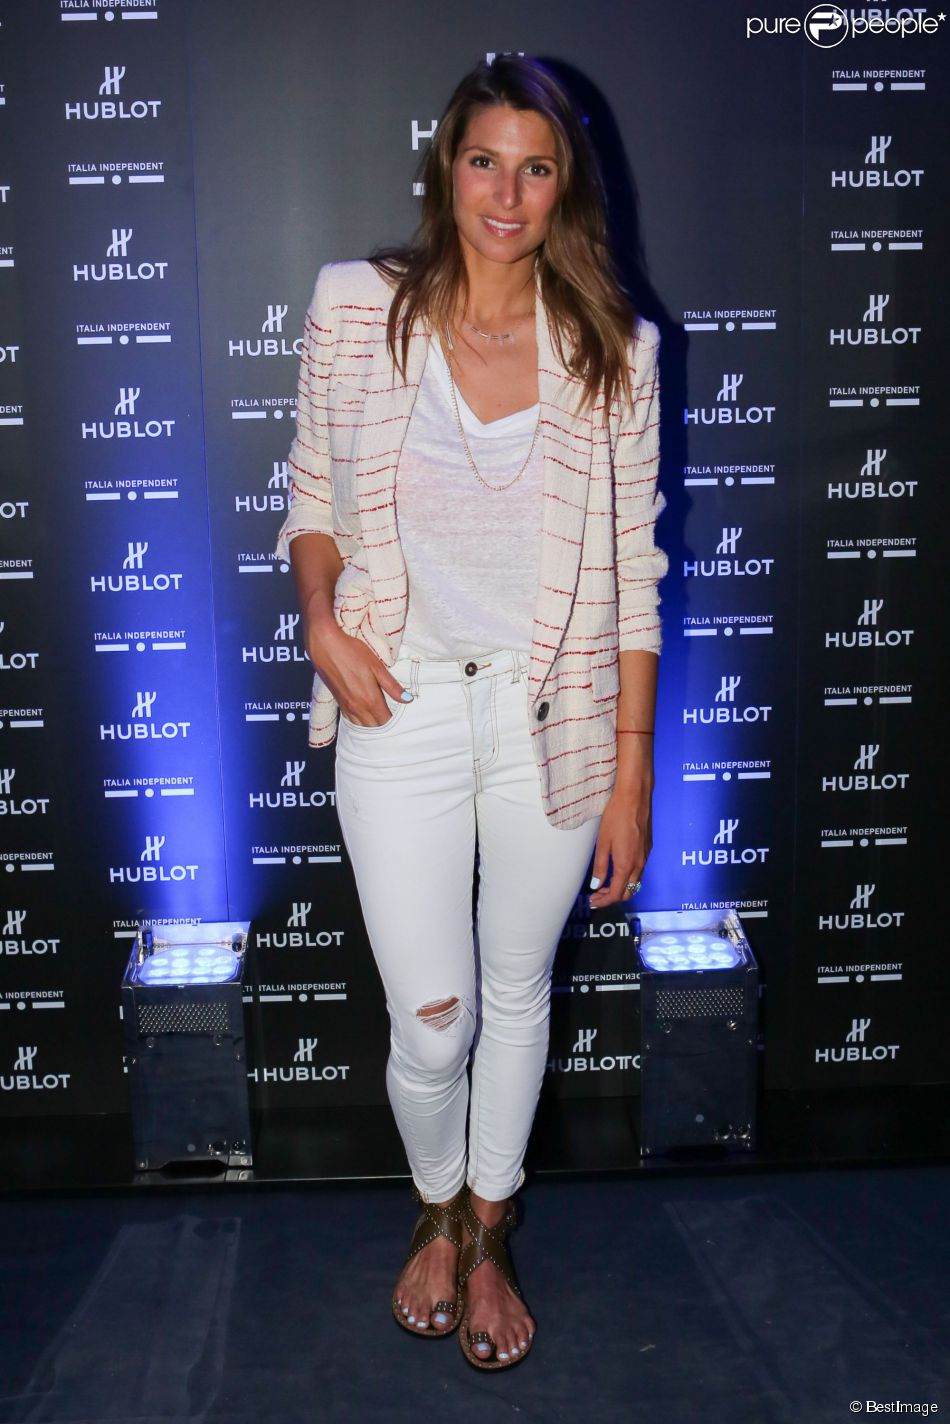 "Laury Thilleman - Soirée de lancement de la montre ""Big Bang Unico Italia Independent"" de Hublot au restaurant Monsieur Bleu à Paris, le 24 juin 2015."